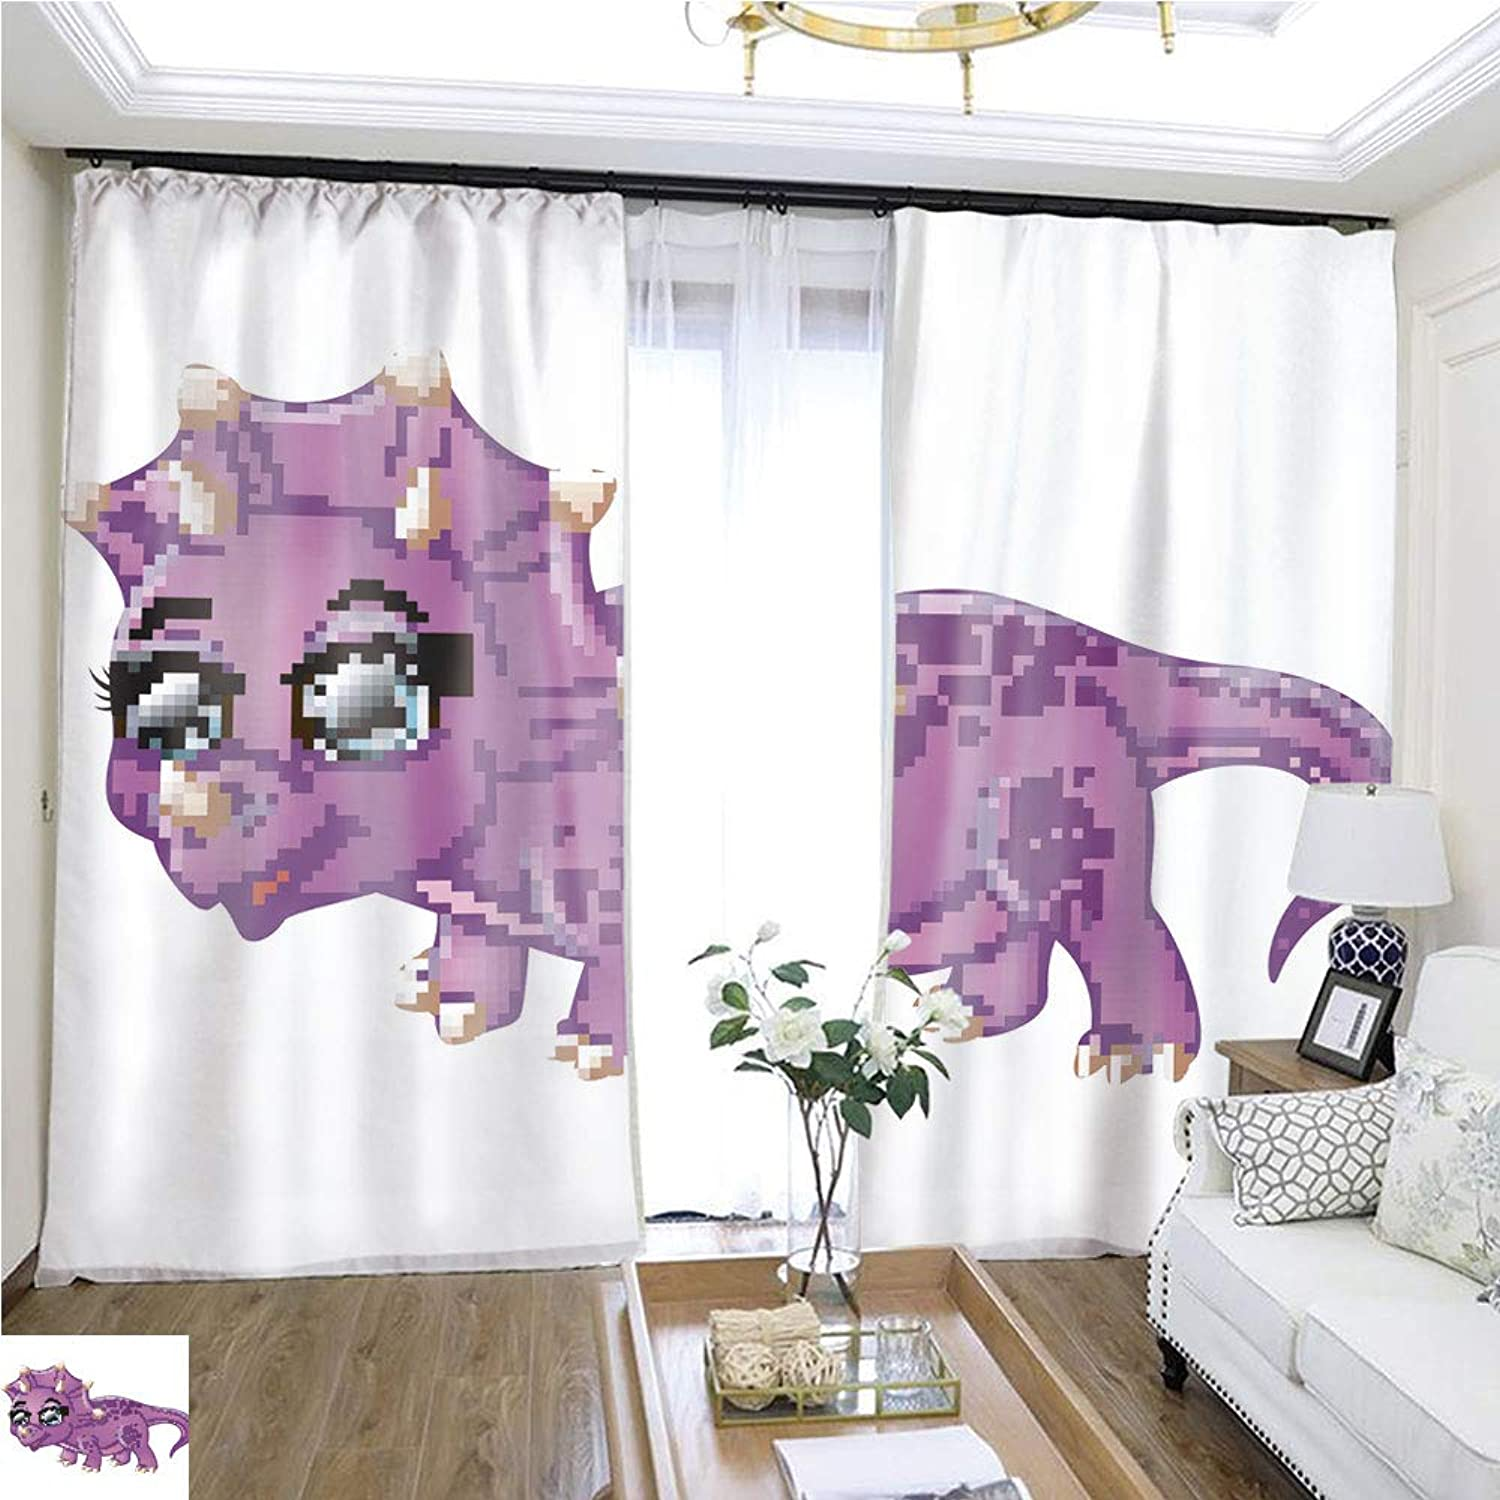 Air Port Screen Cute Triceratops Cartoon W96 x L276 Provide Heat Highprecision Curtains for bedrooms Living Rooms Kitchens etc.